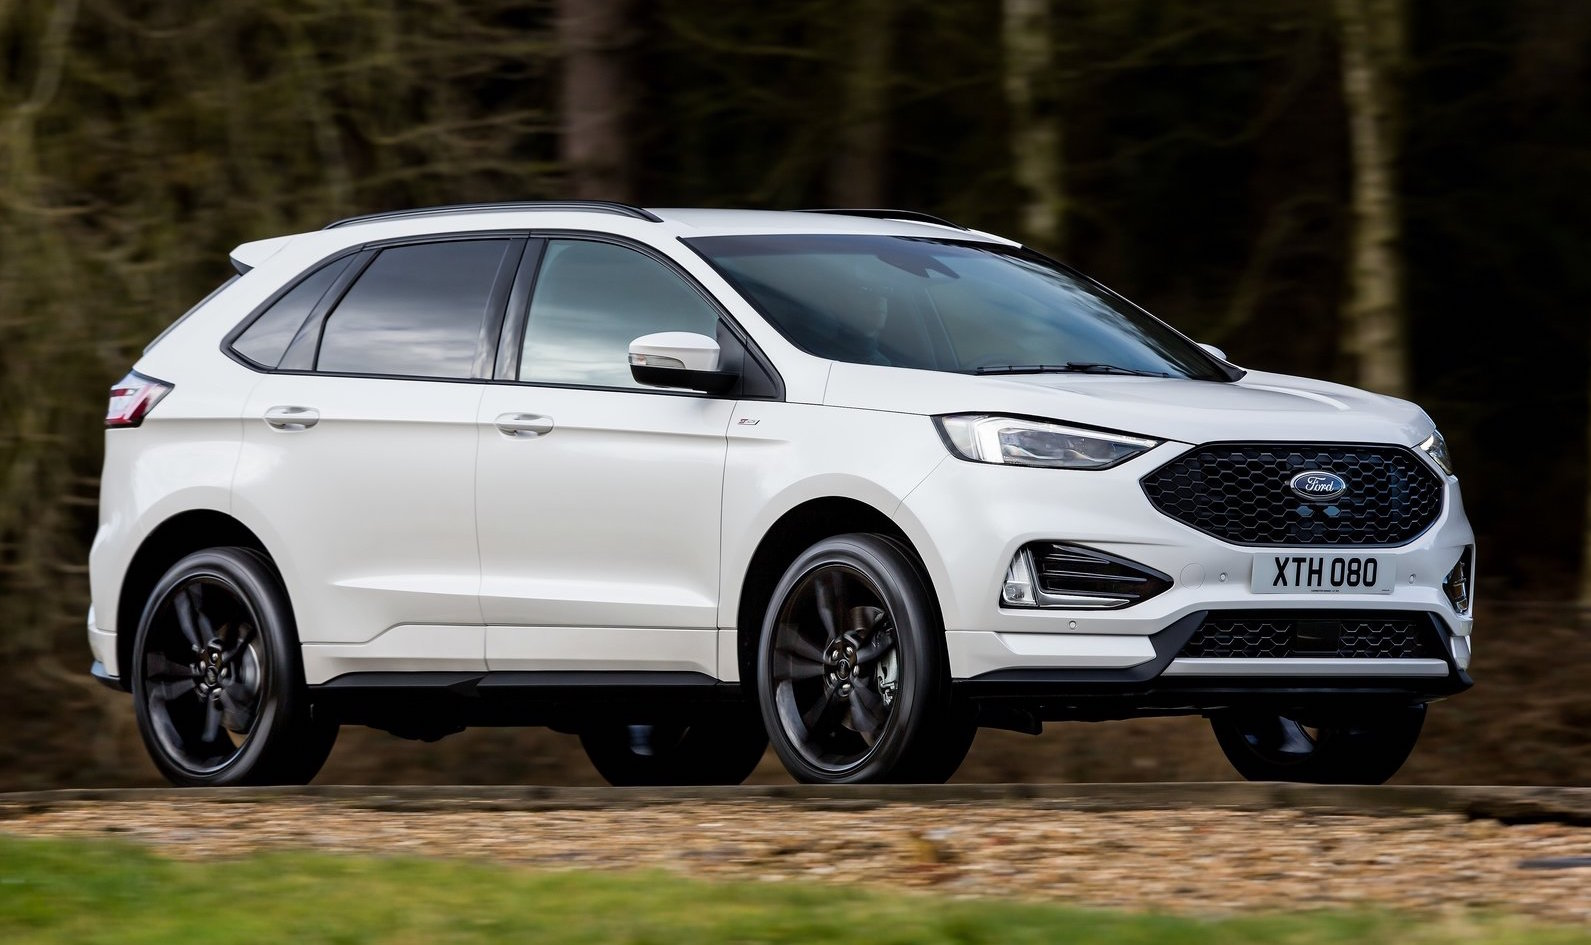 Toyota Suv Used >> Sporty Ford Endura ST-Line confirmed for Australia (video ...